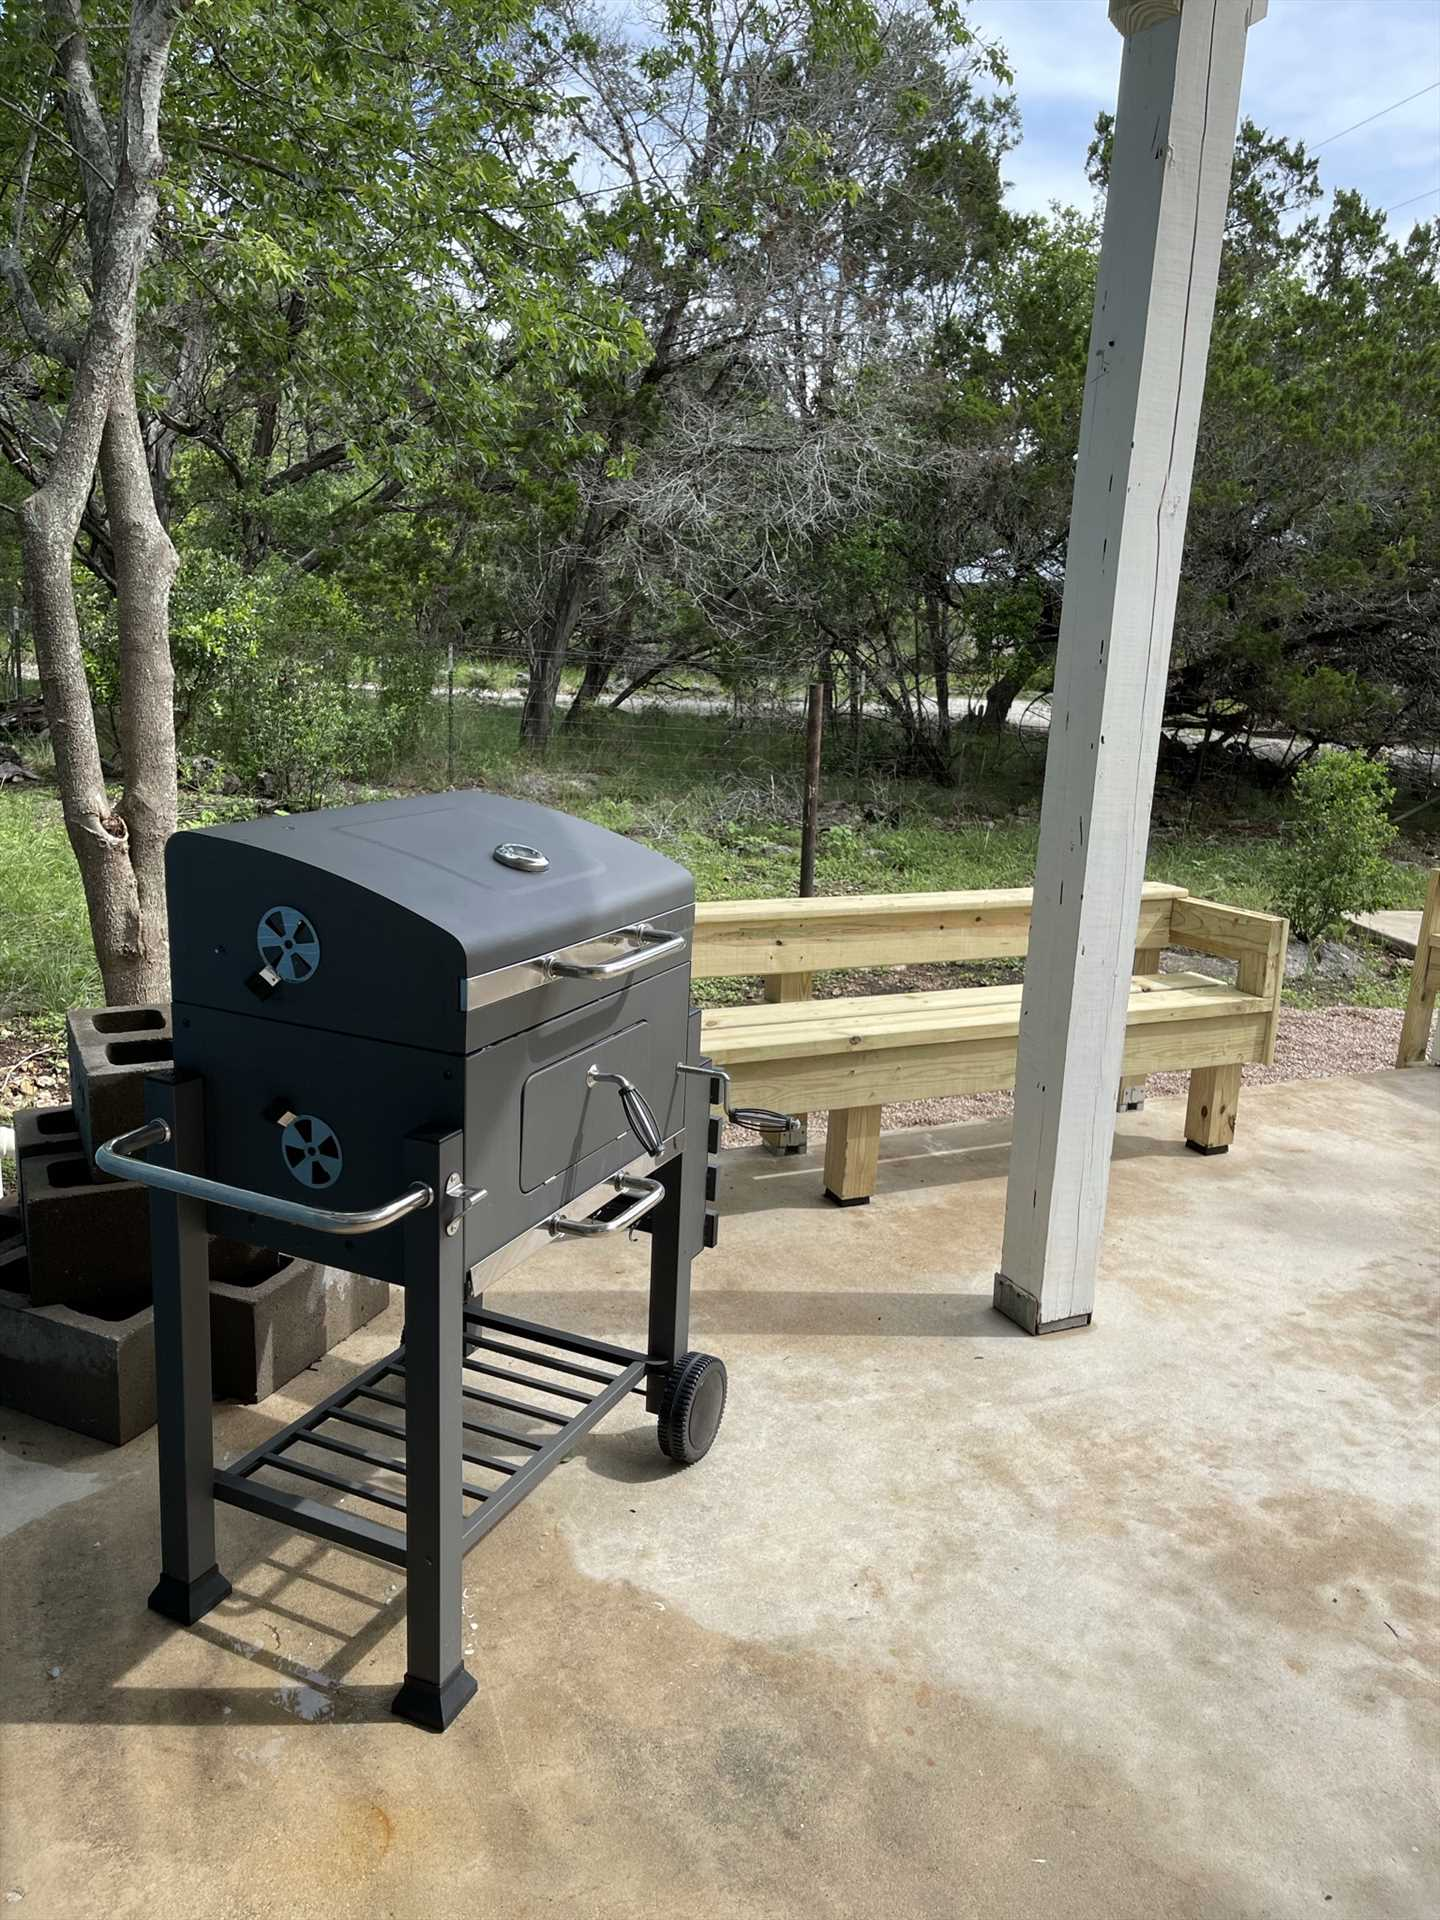 Rock your BBQ skills on the modern charcoal grill!